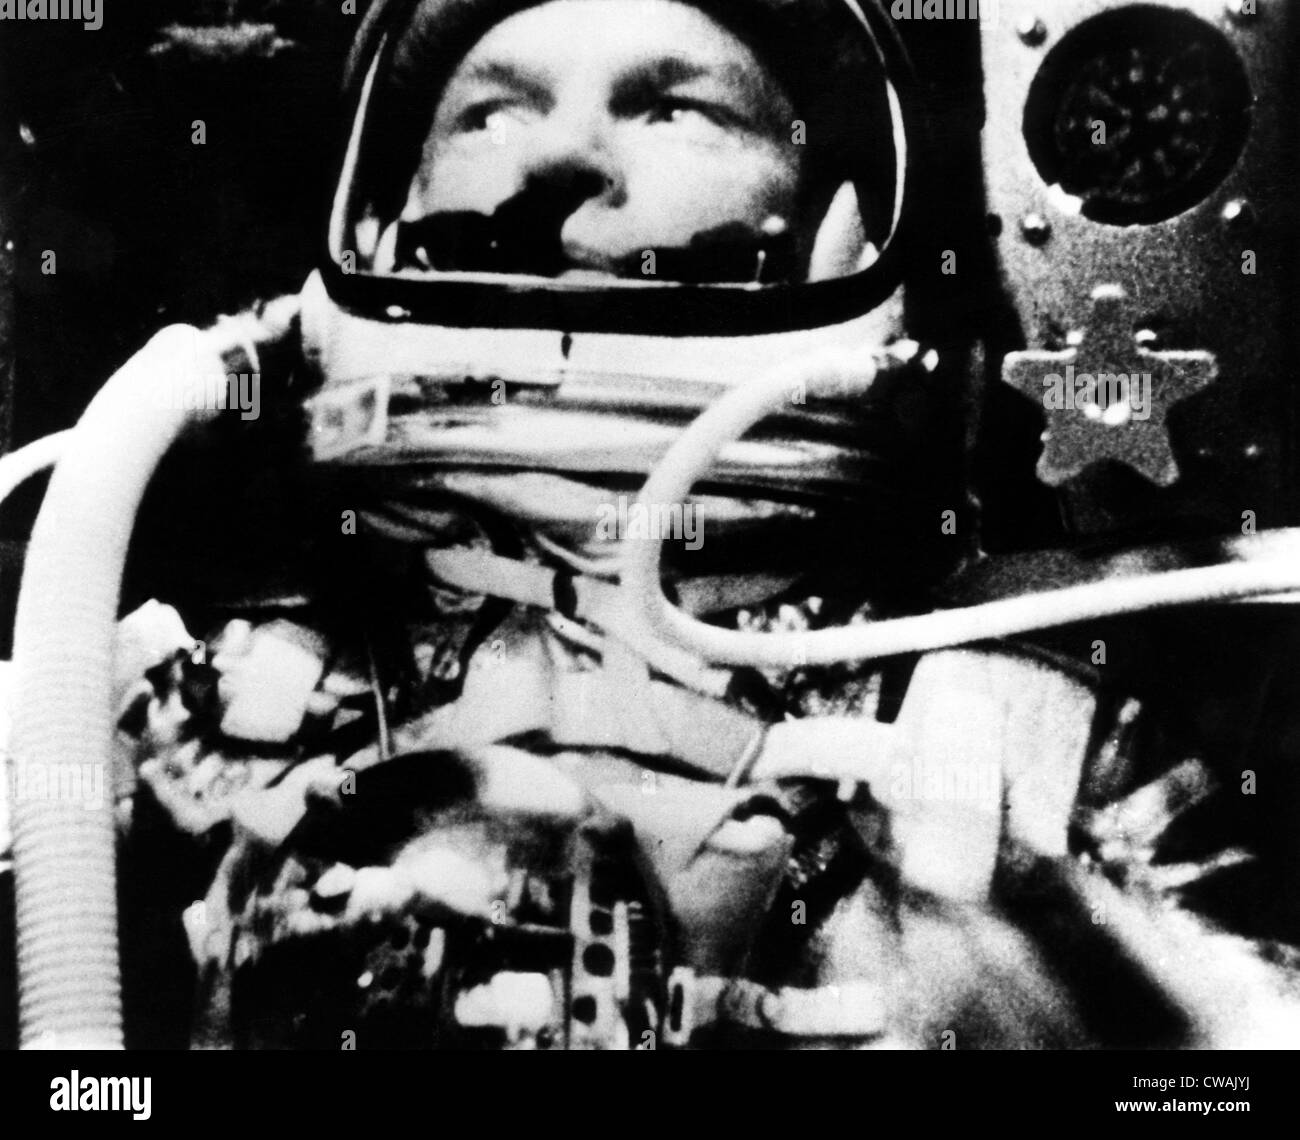 Astronaut John Glenn in his space capsule, February 20, 1962. Courtesy: CSU Archives/Everett Collection - Stock Image